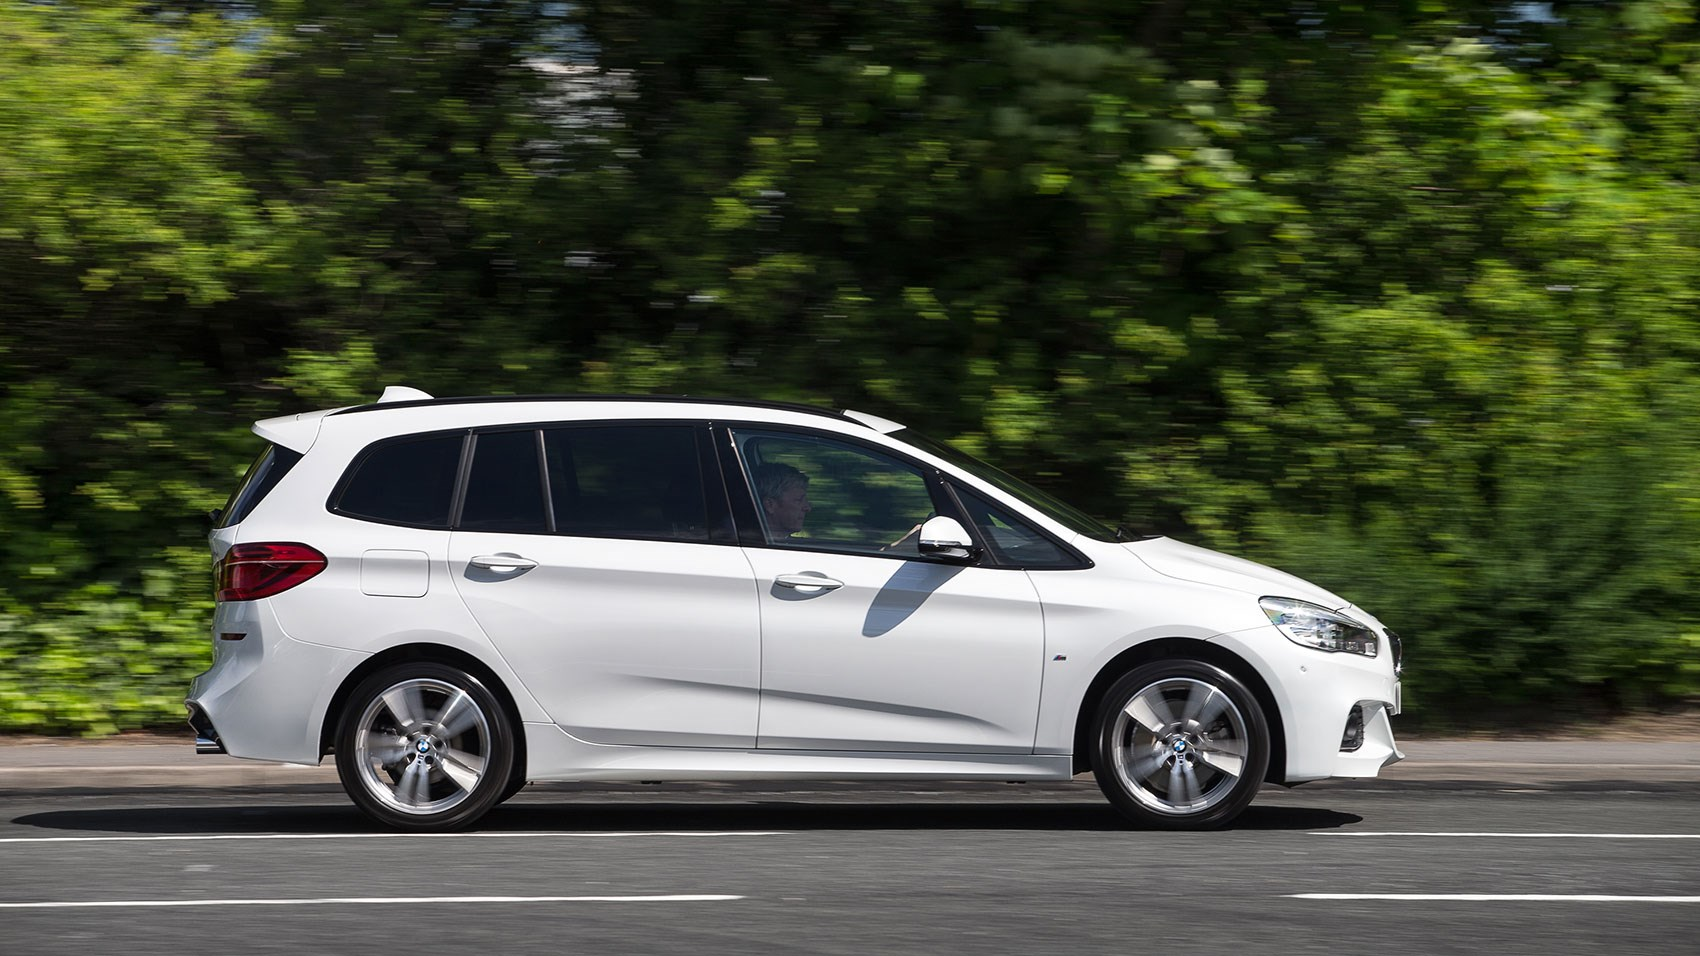 BMW 2 Series Grand Tourer F46 2015 - now Compact MPV #2